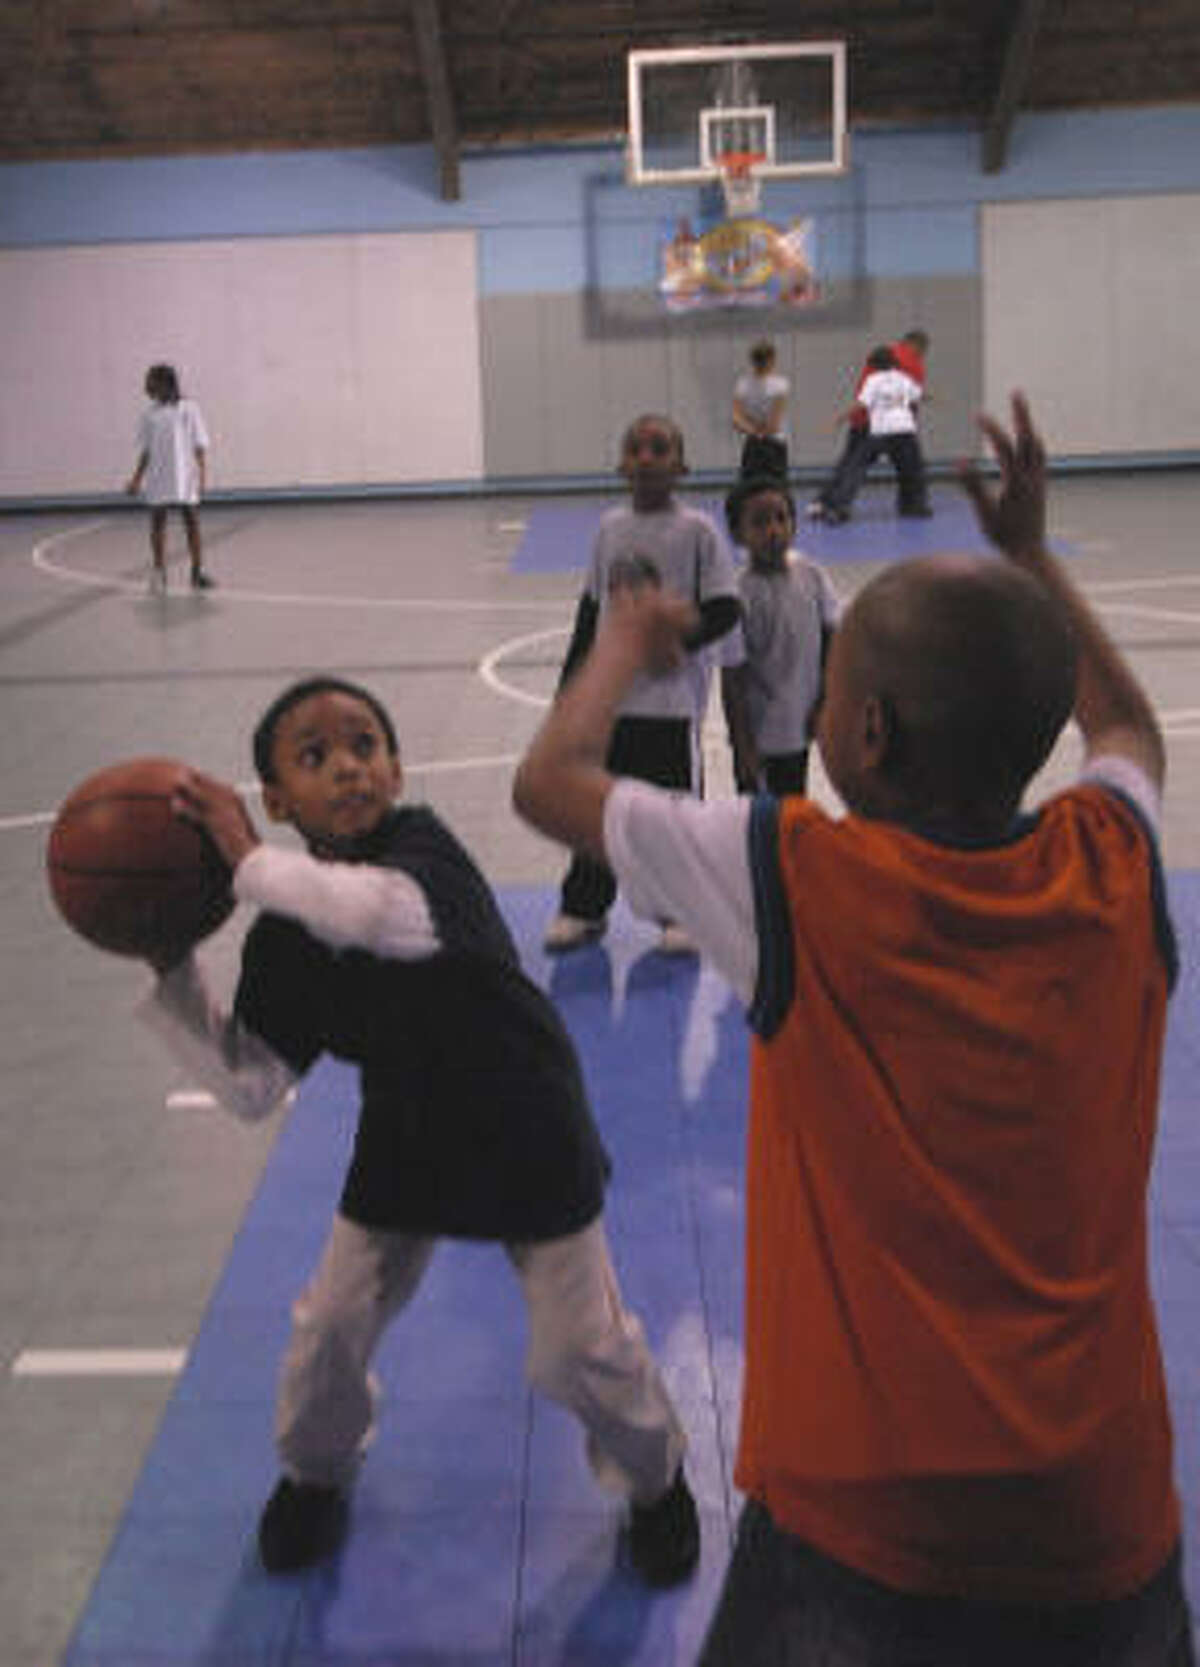 The South Central Y's boys team gets a workout at a city park gym.